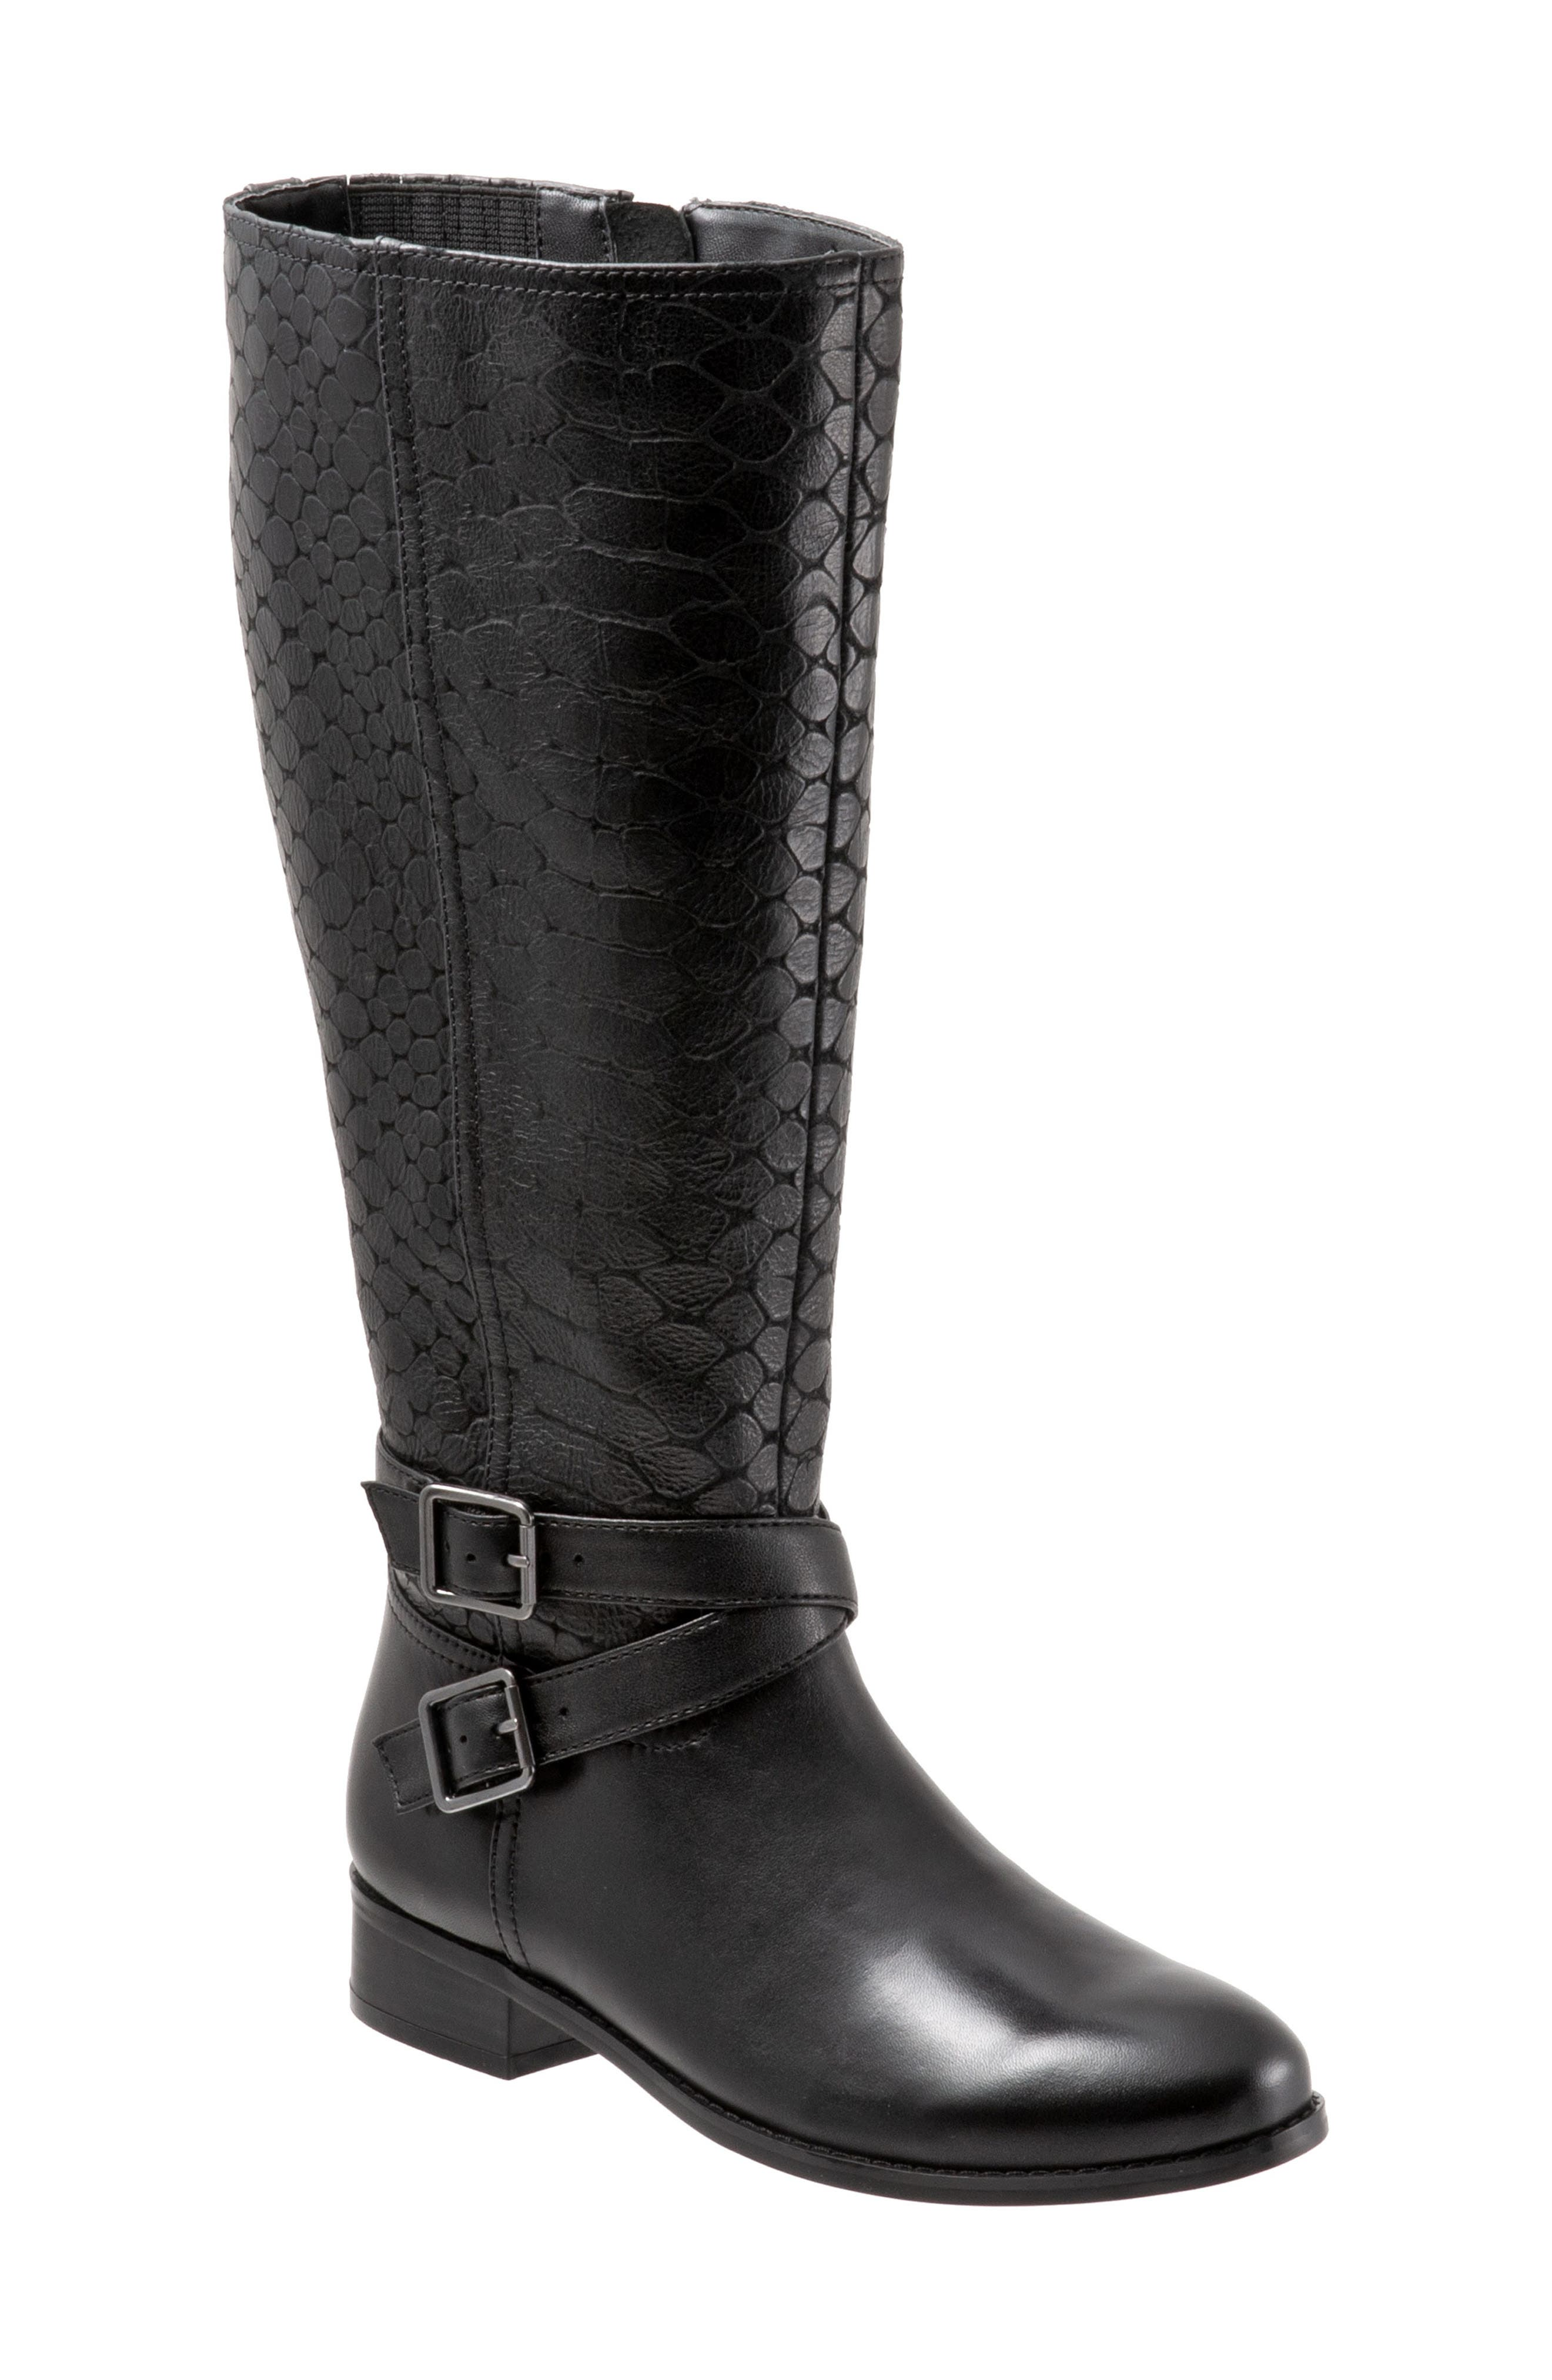 Trotters Liberty Knee High Boot, Black